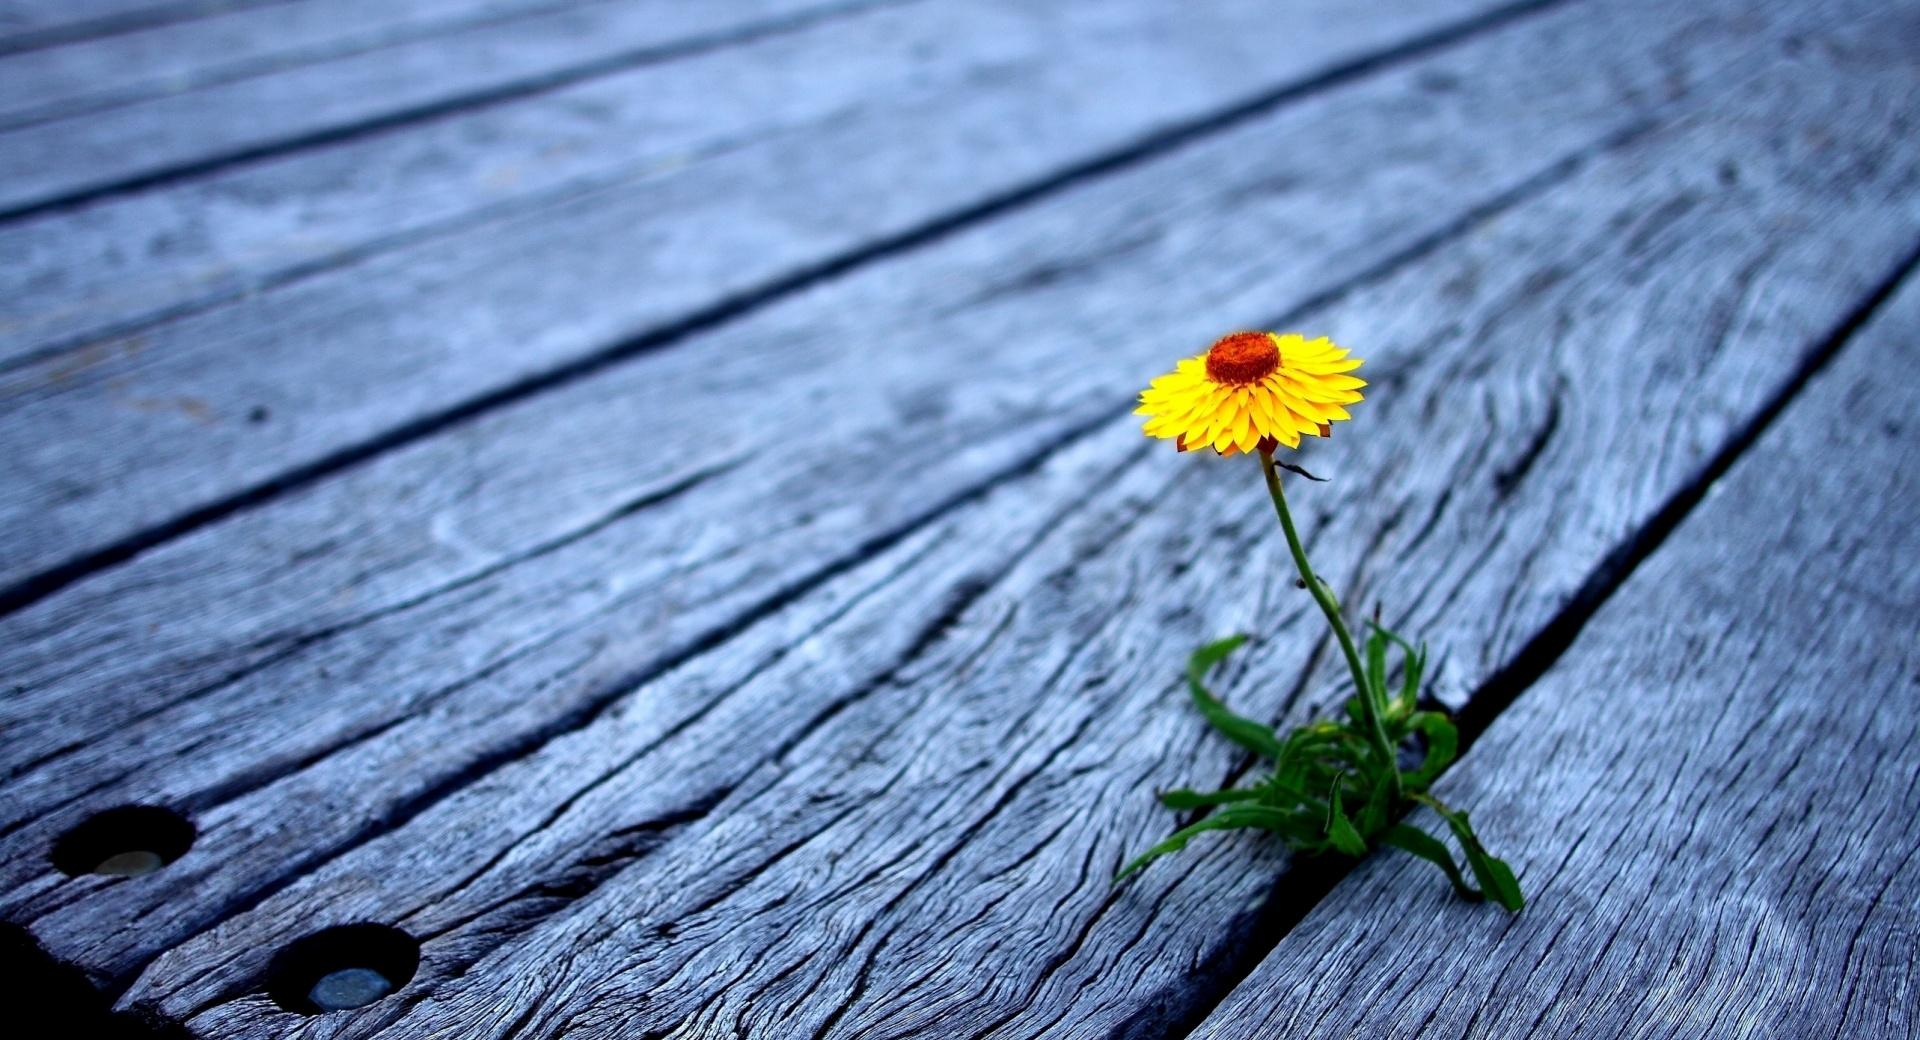 Flower Between Wooden Boards wallpapers HD quality